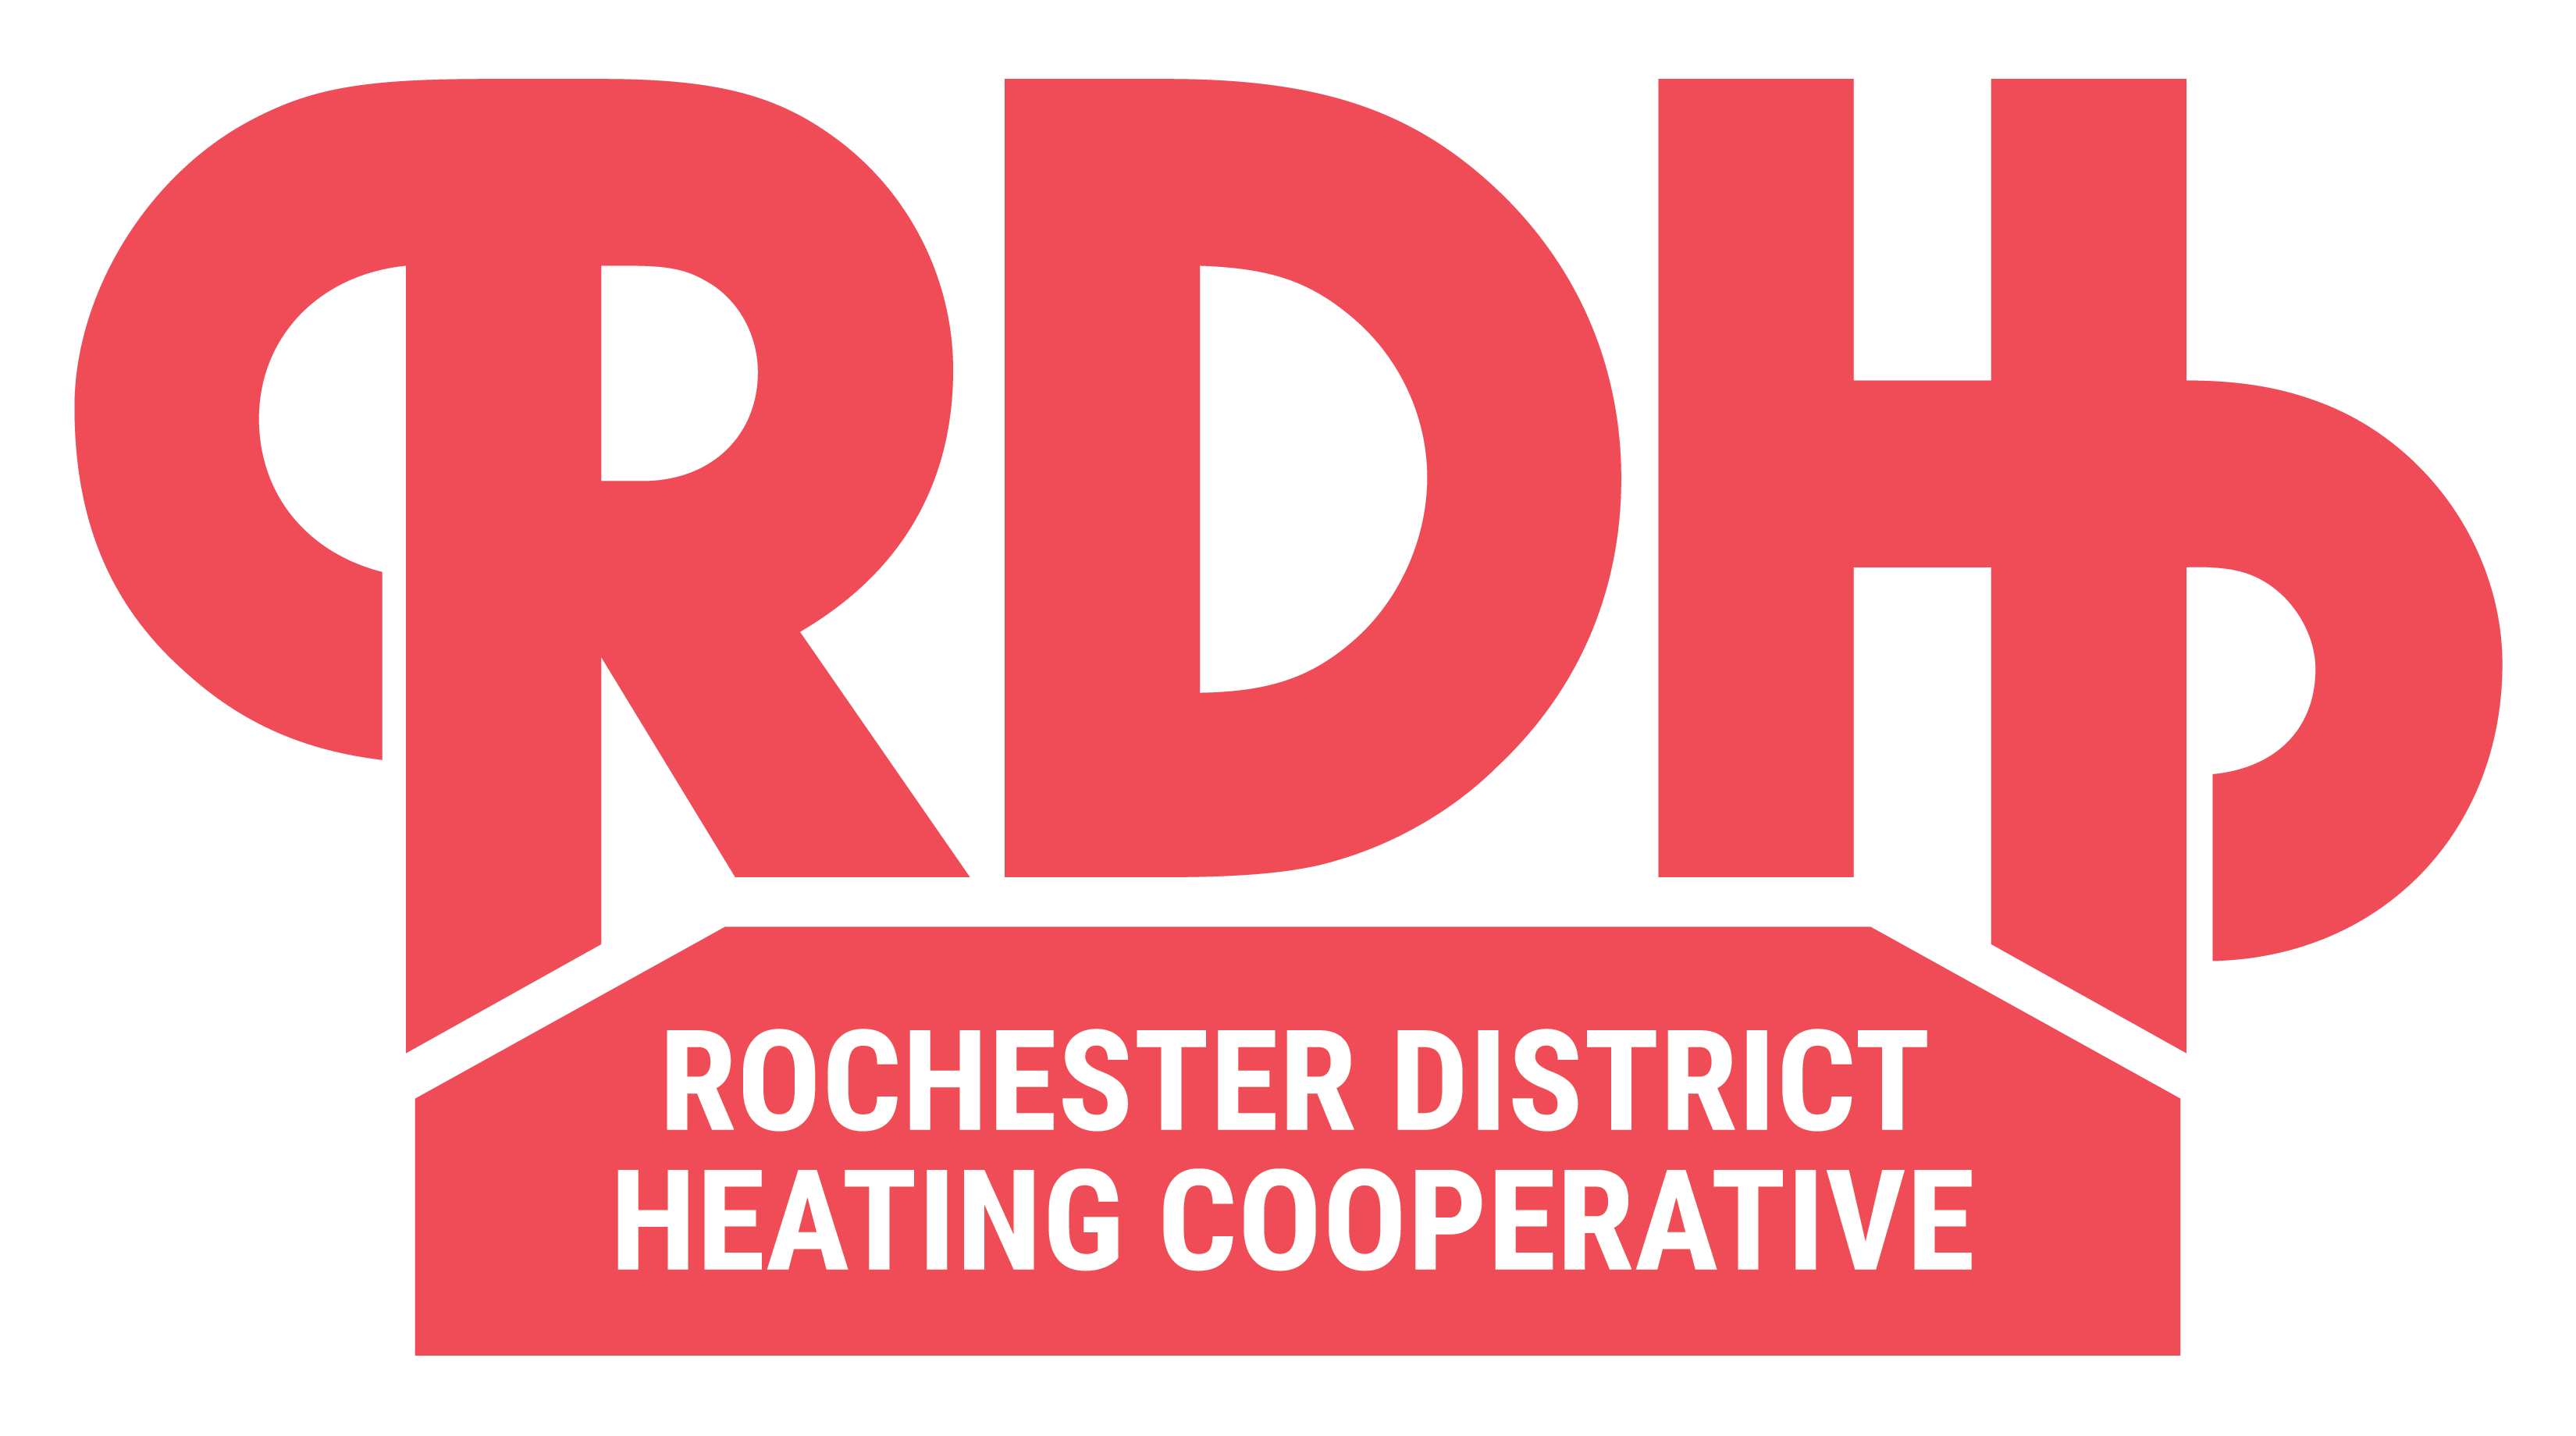 Rochester District Heating Cooperative